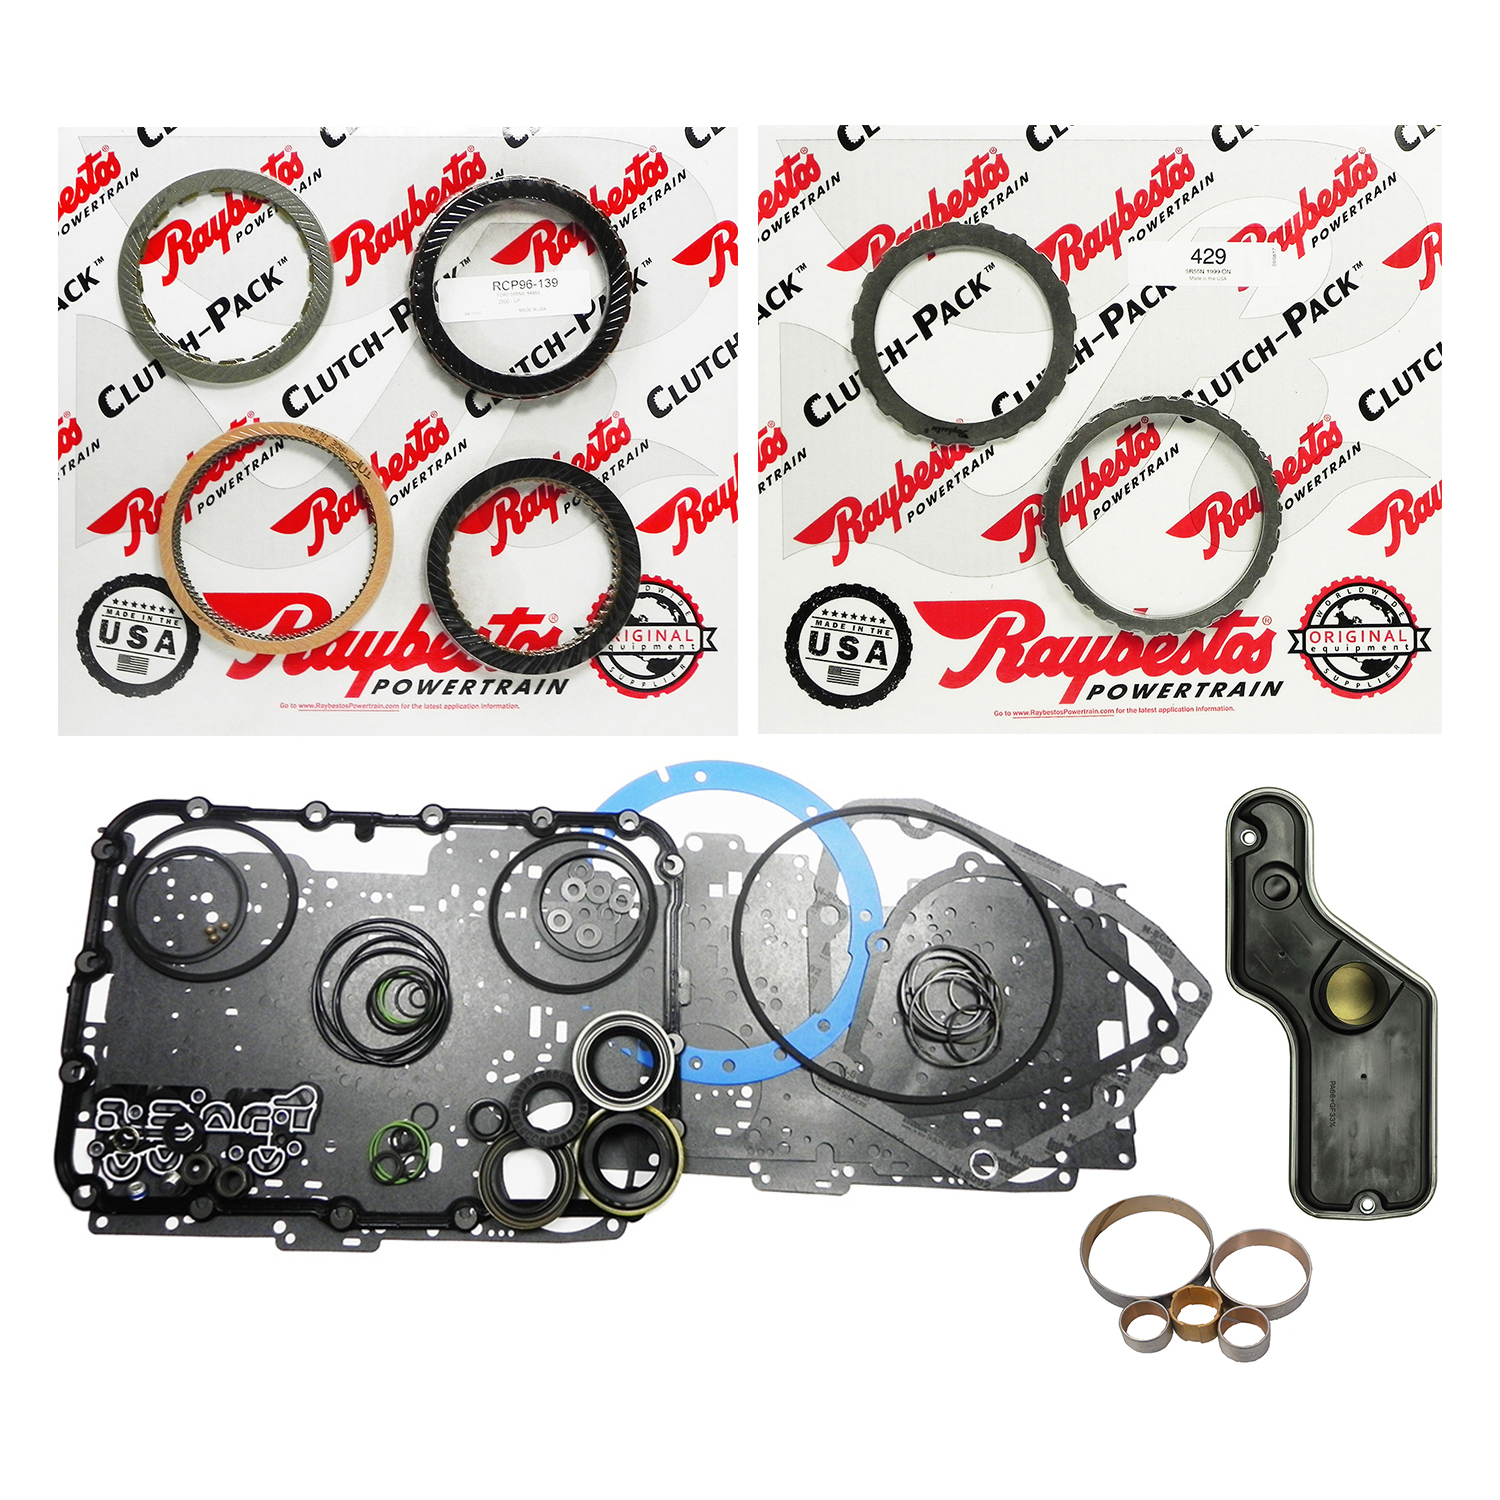 5R55S/5R55W  Super Rebuild Kit